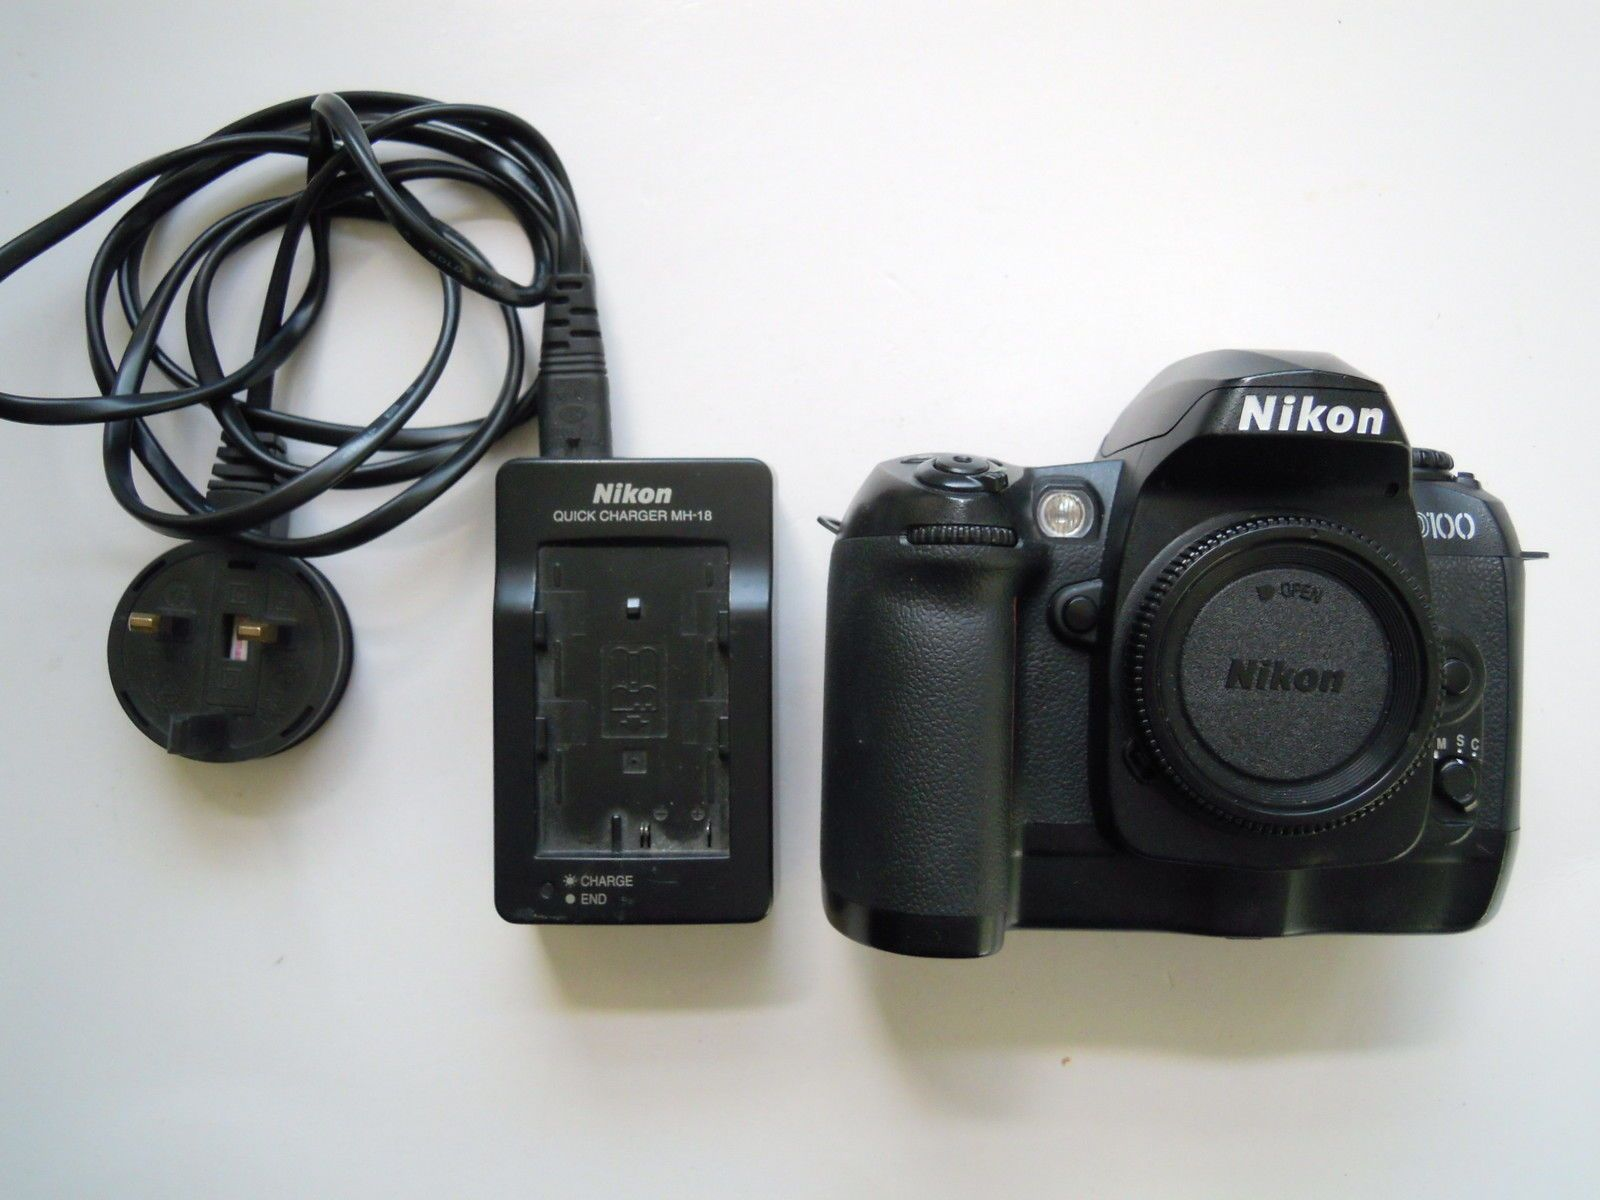 Nikon D D100 6 1 Mp Digital Slr Camera Black With